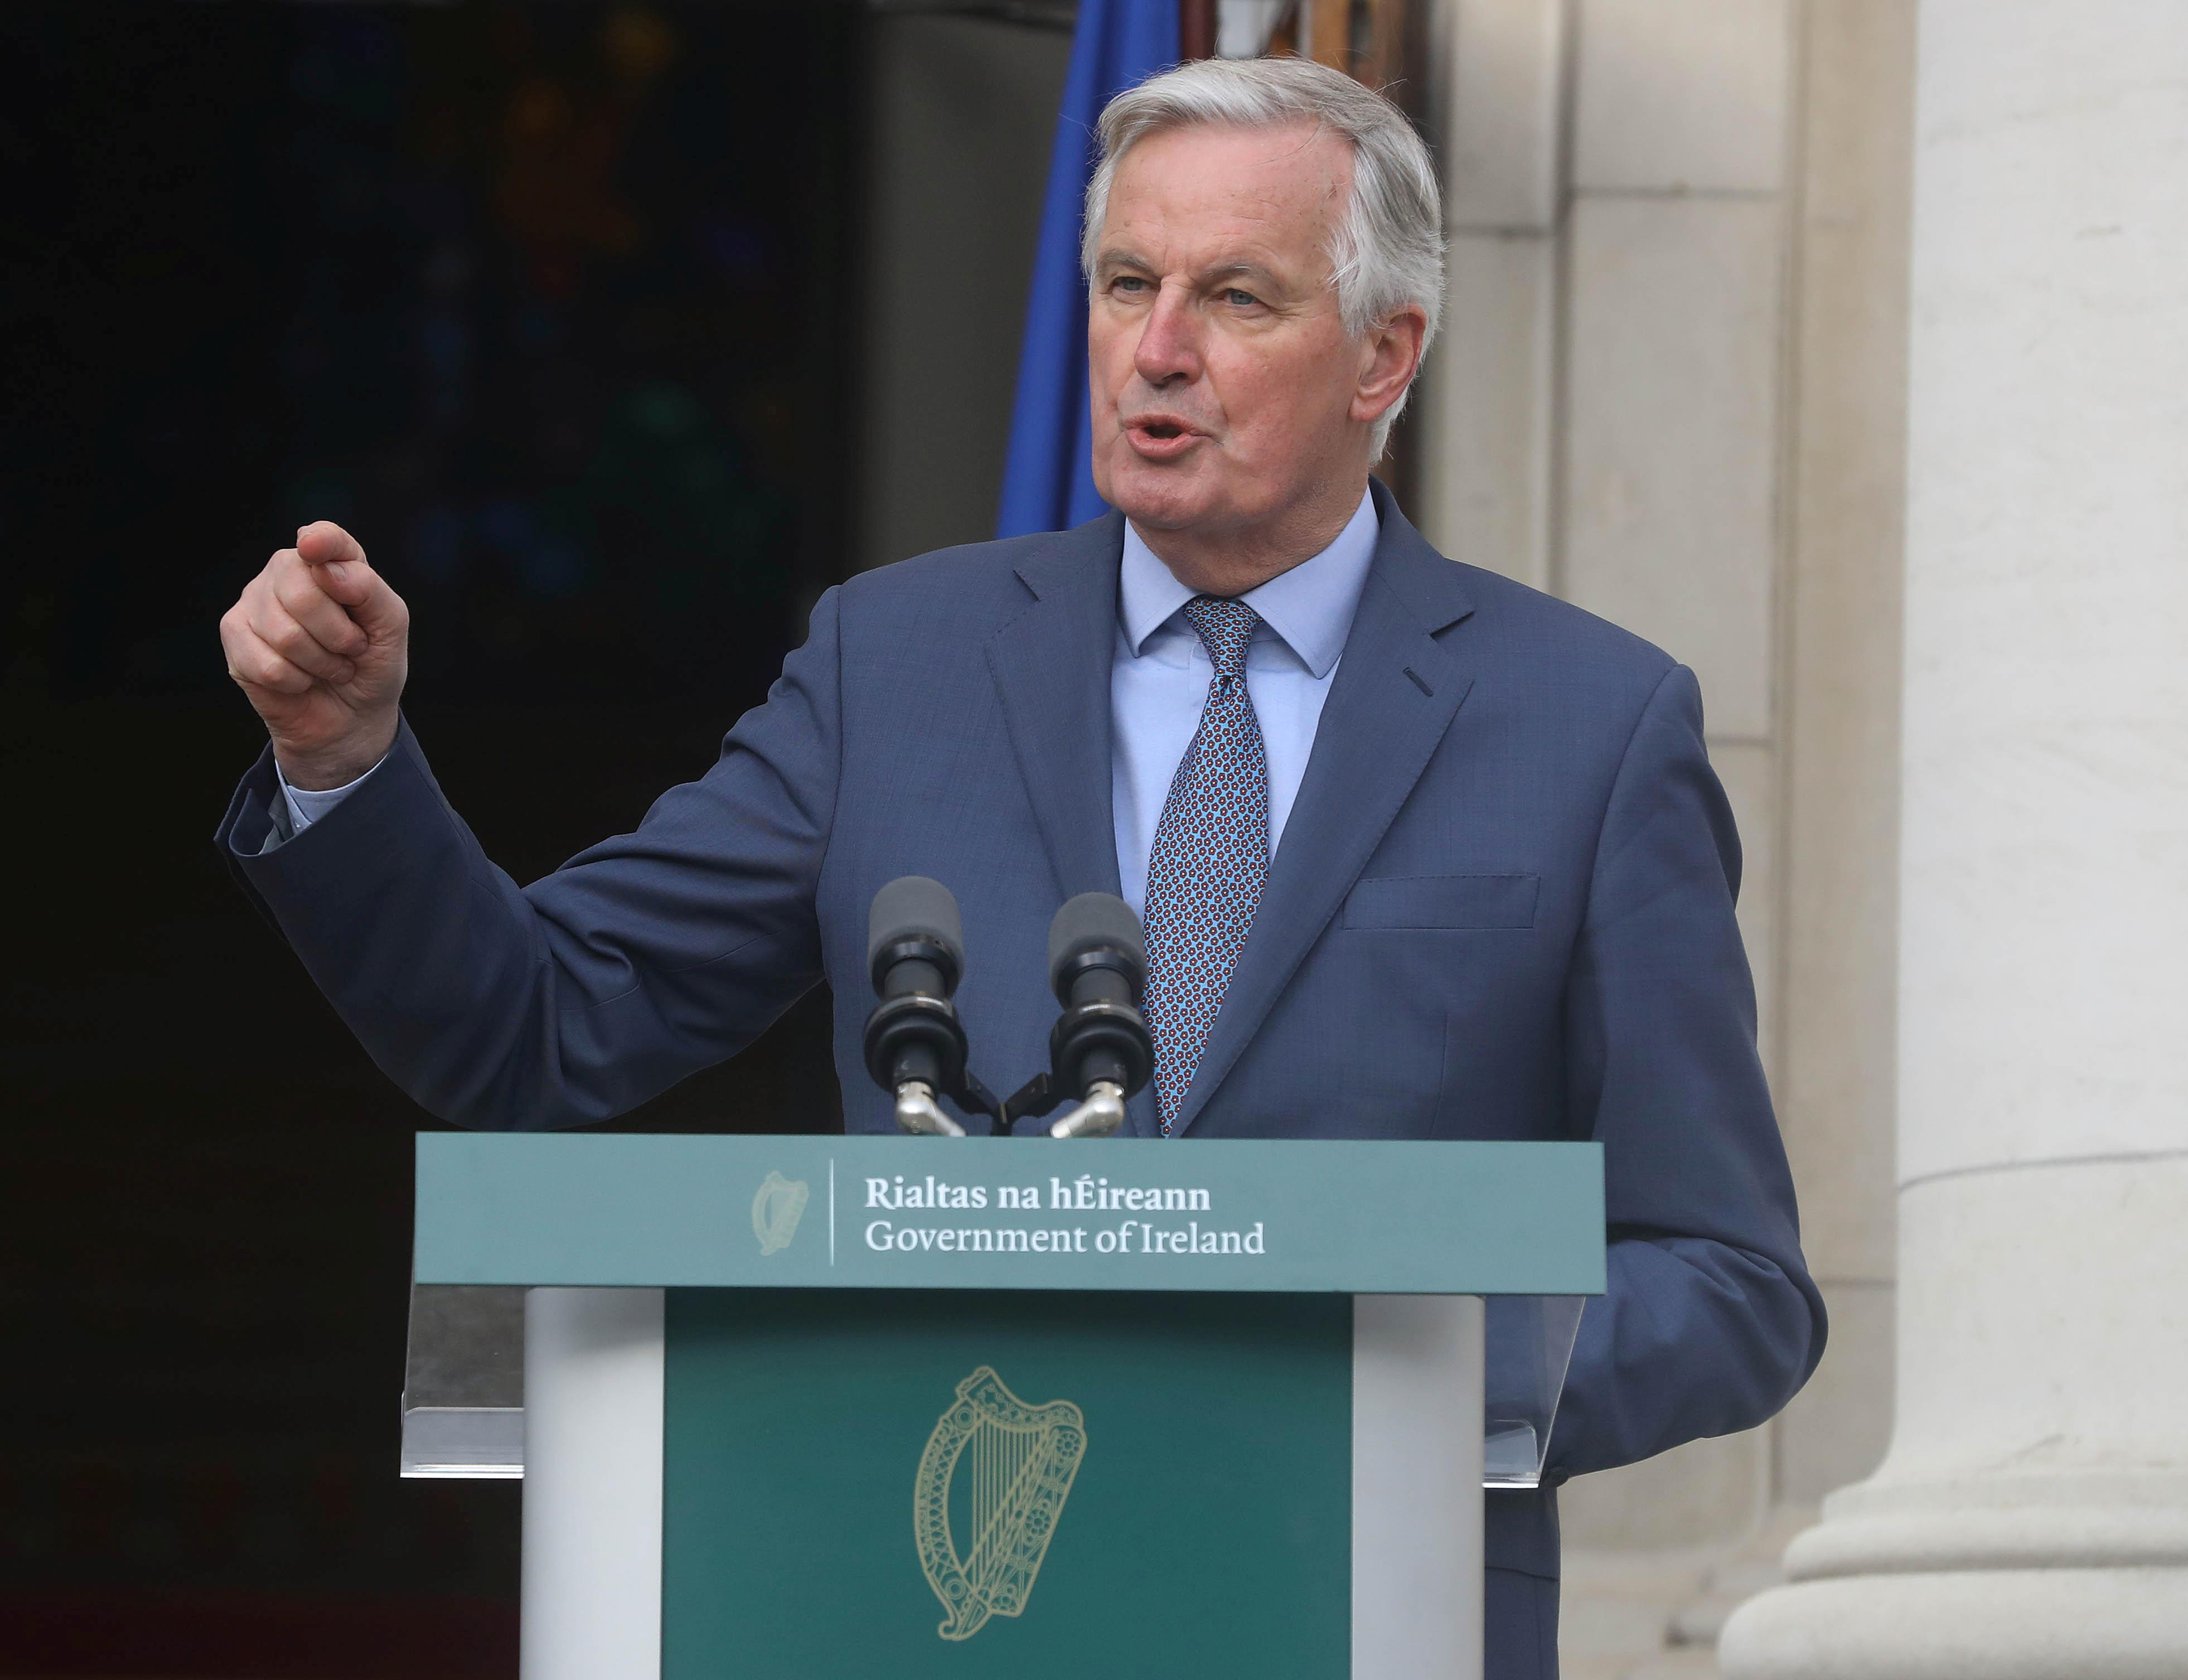 Brexit withdrawal deal must be implemented 'with rigor': EU's Barnier